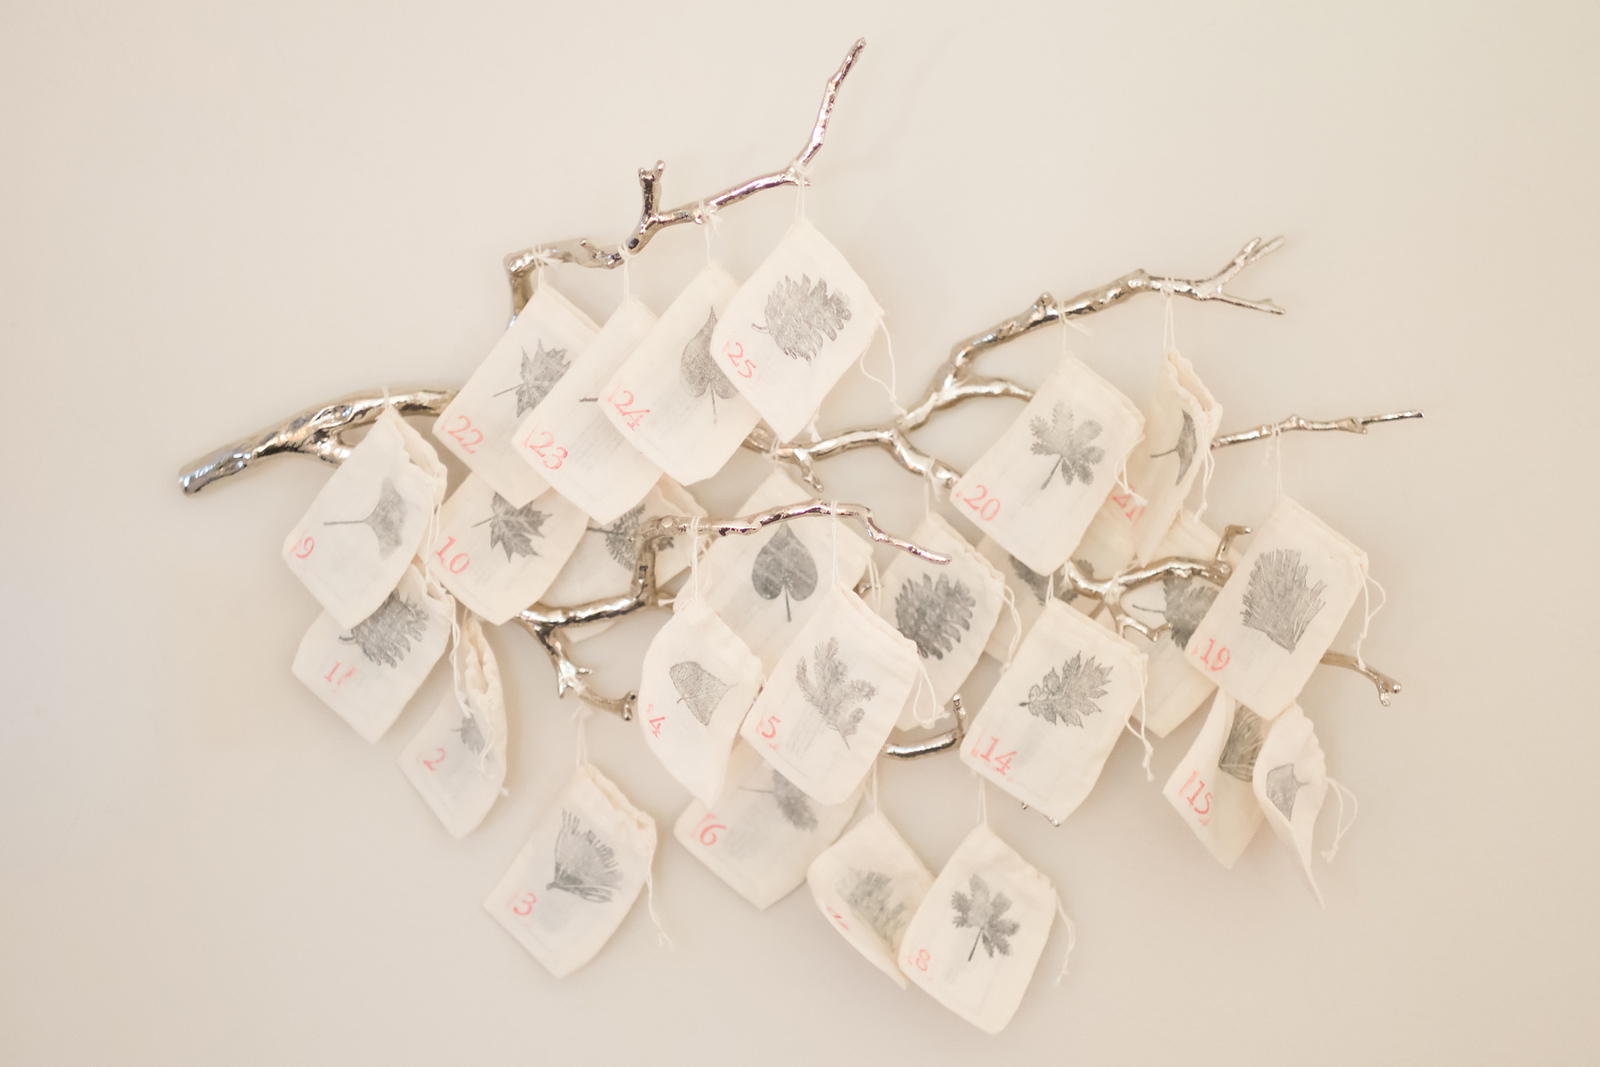 Number and greenery stamps create beautiful decorations on muslin bags